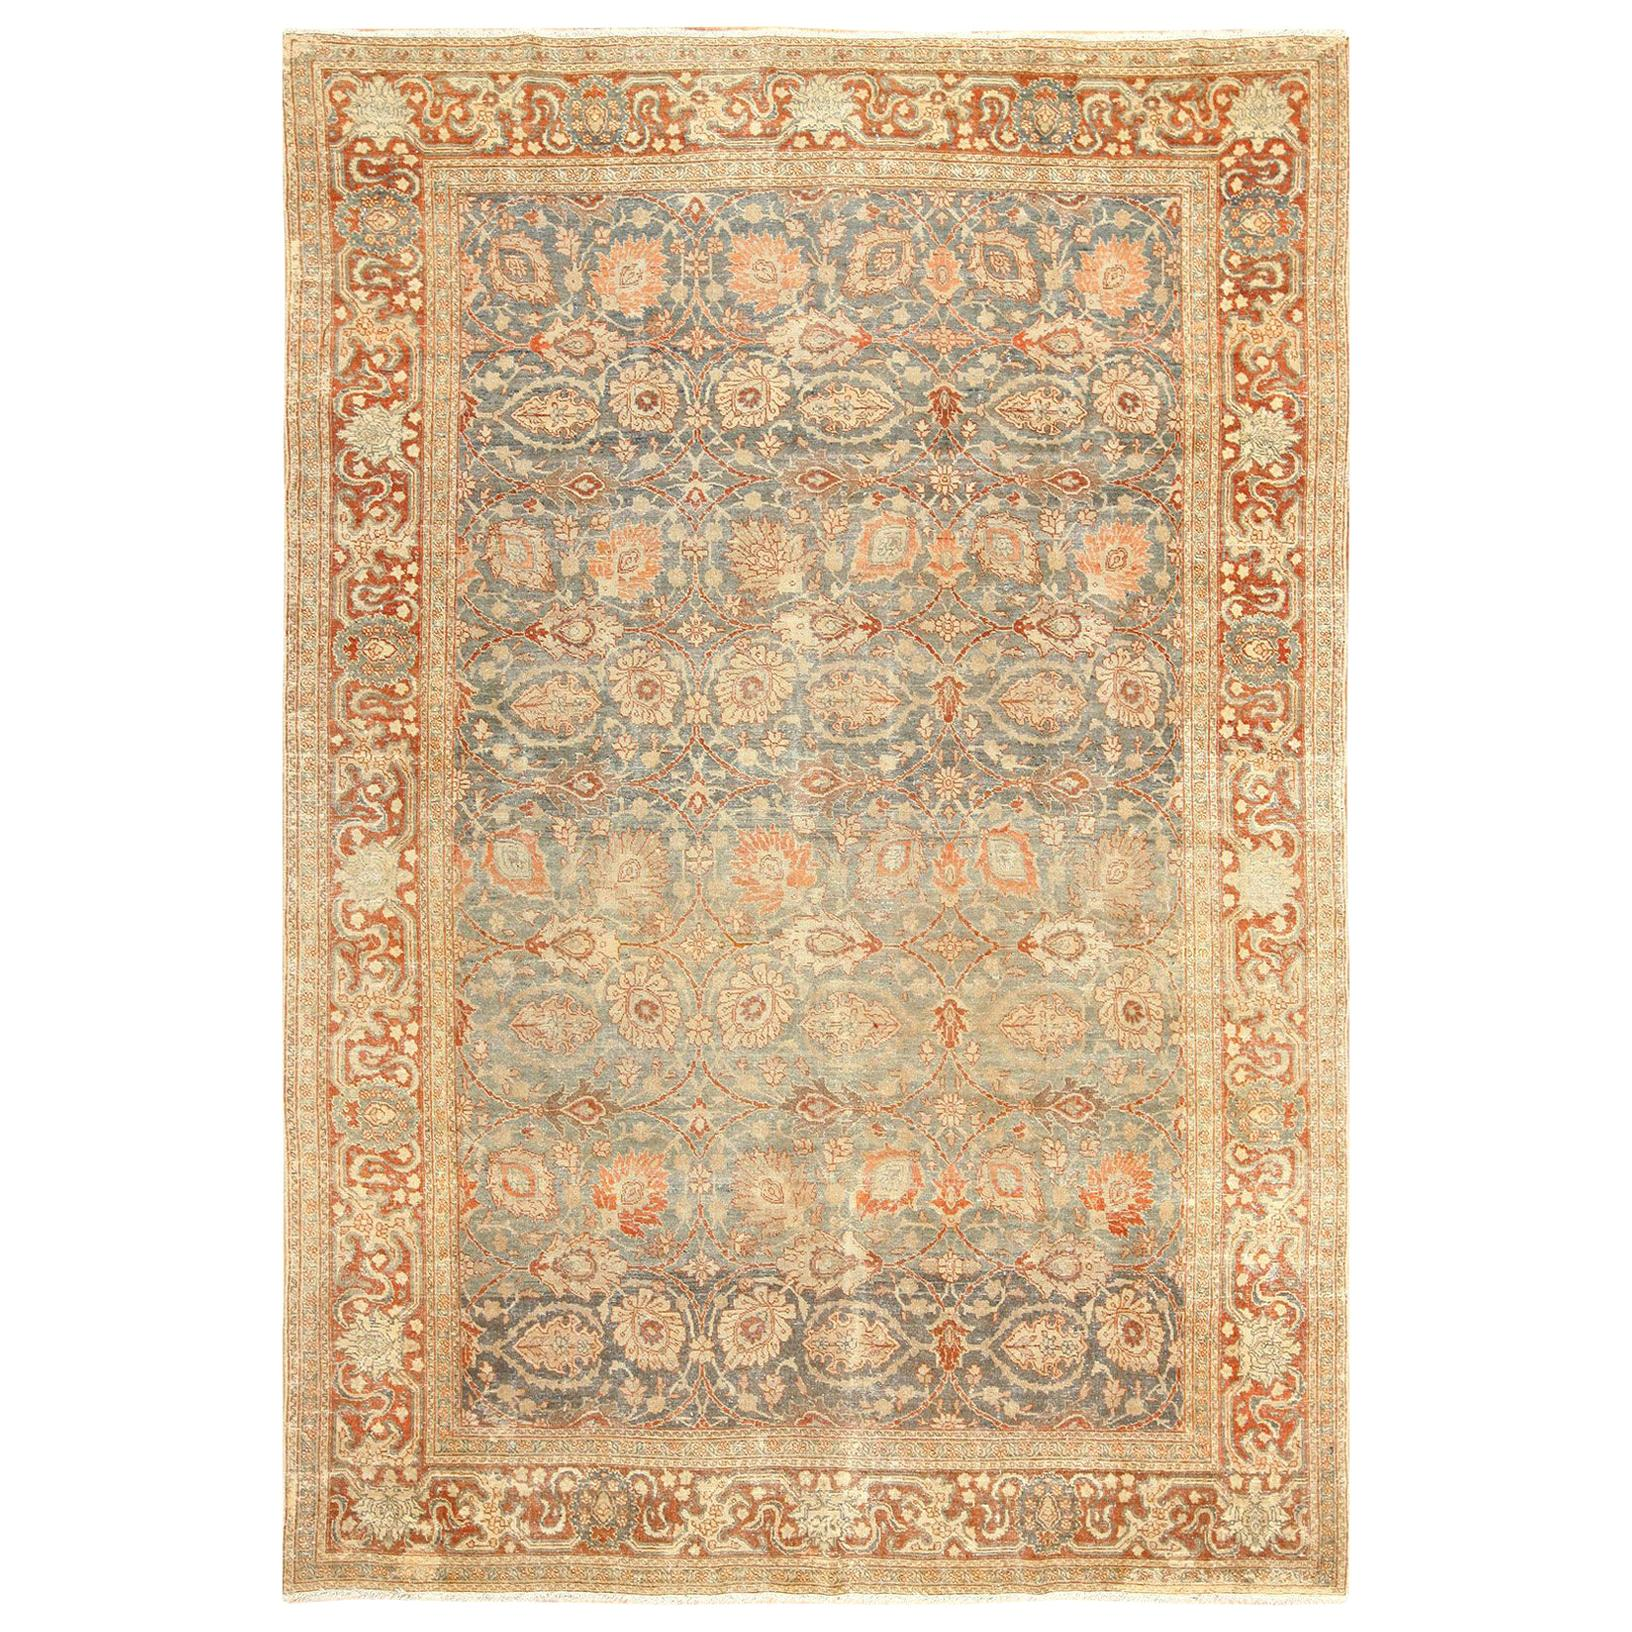 Room Size Antique Tabriz Persian Rug. Size: 7 ft 6 in x 10 ft 10 in